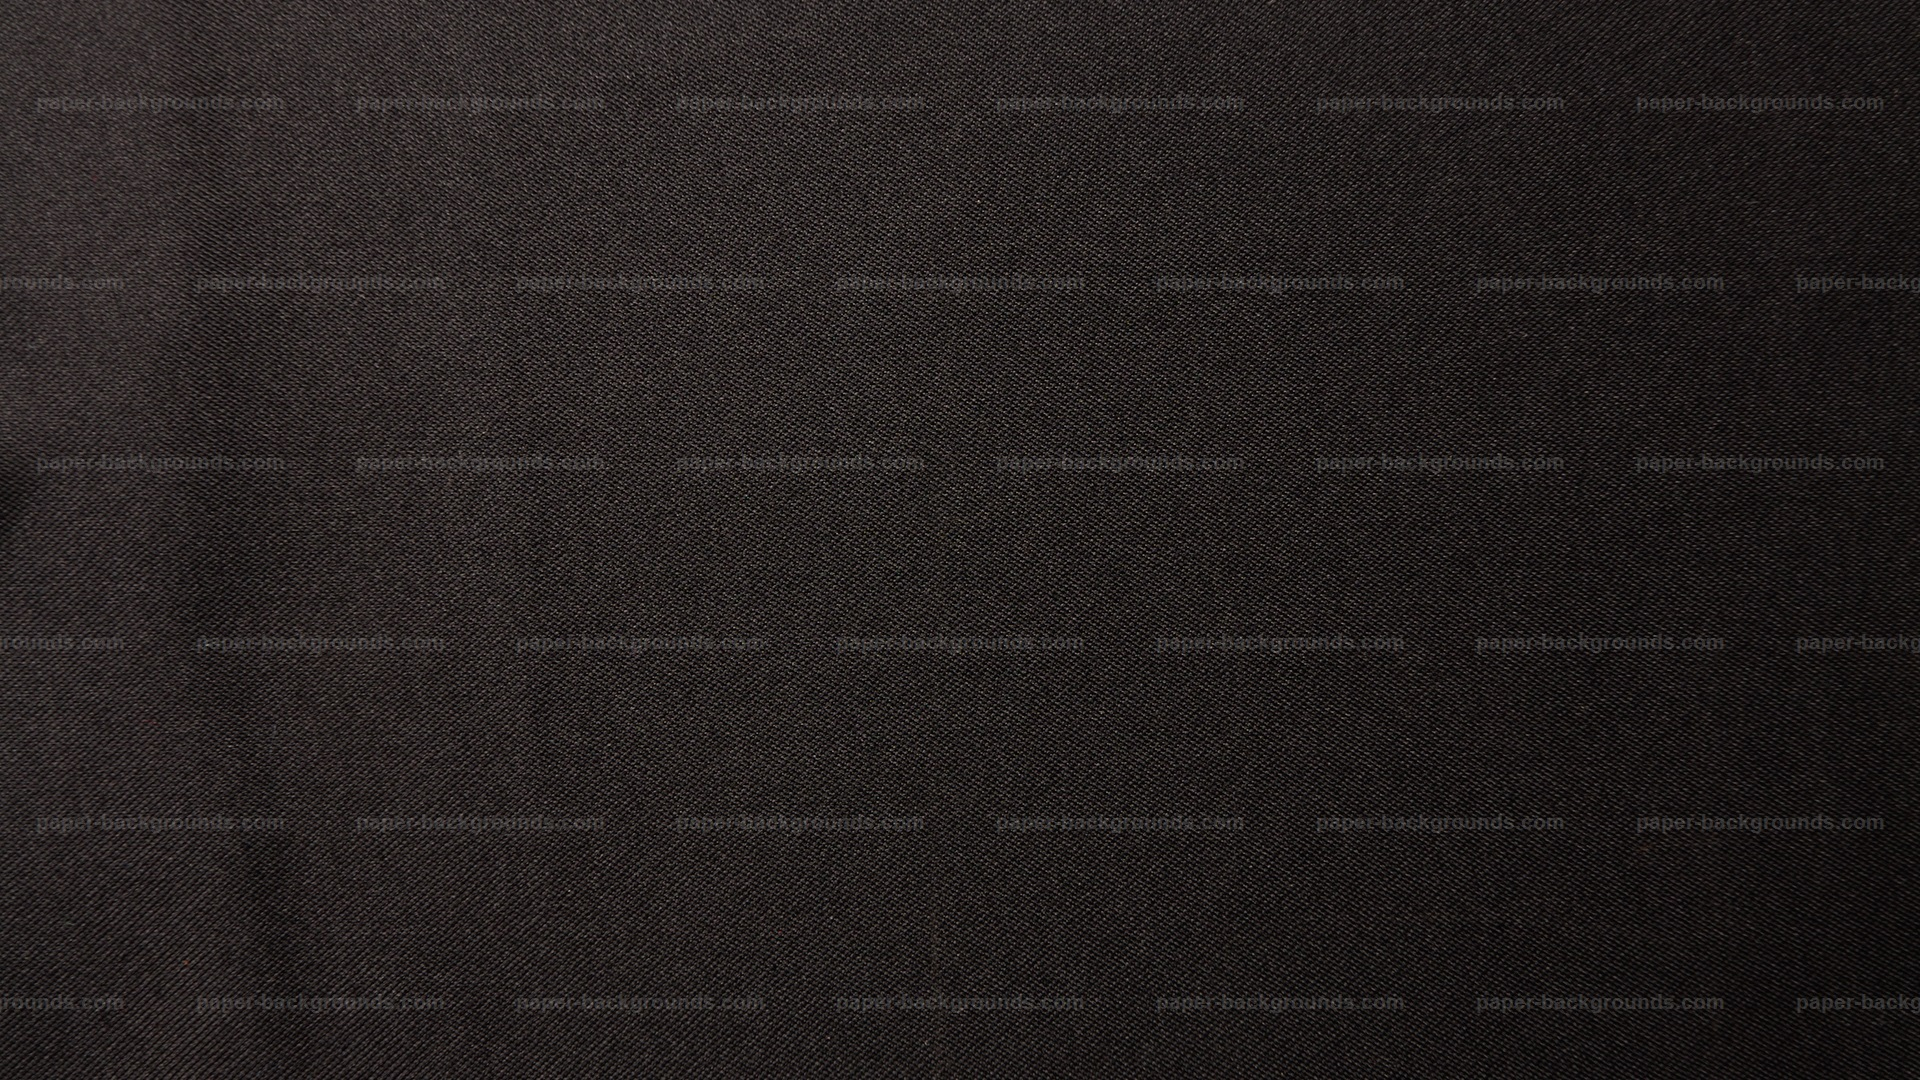 Black Canvas Texture HD